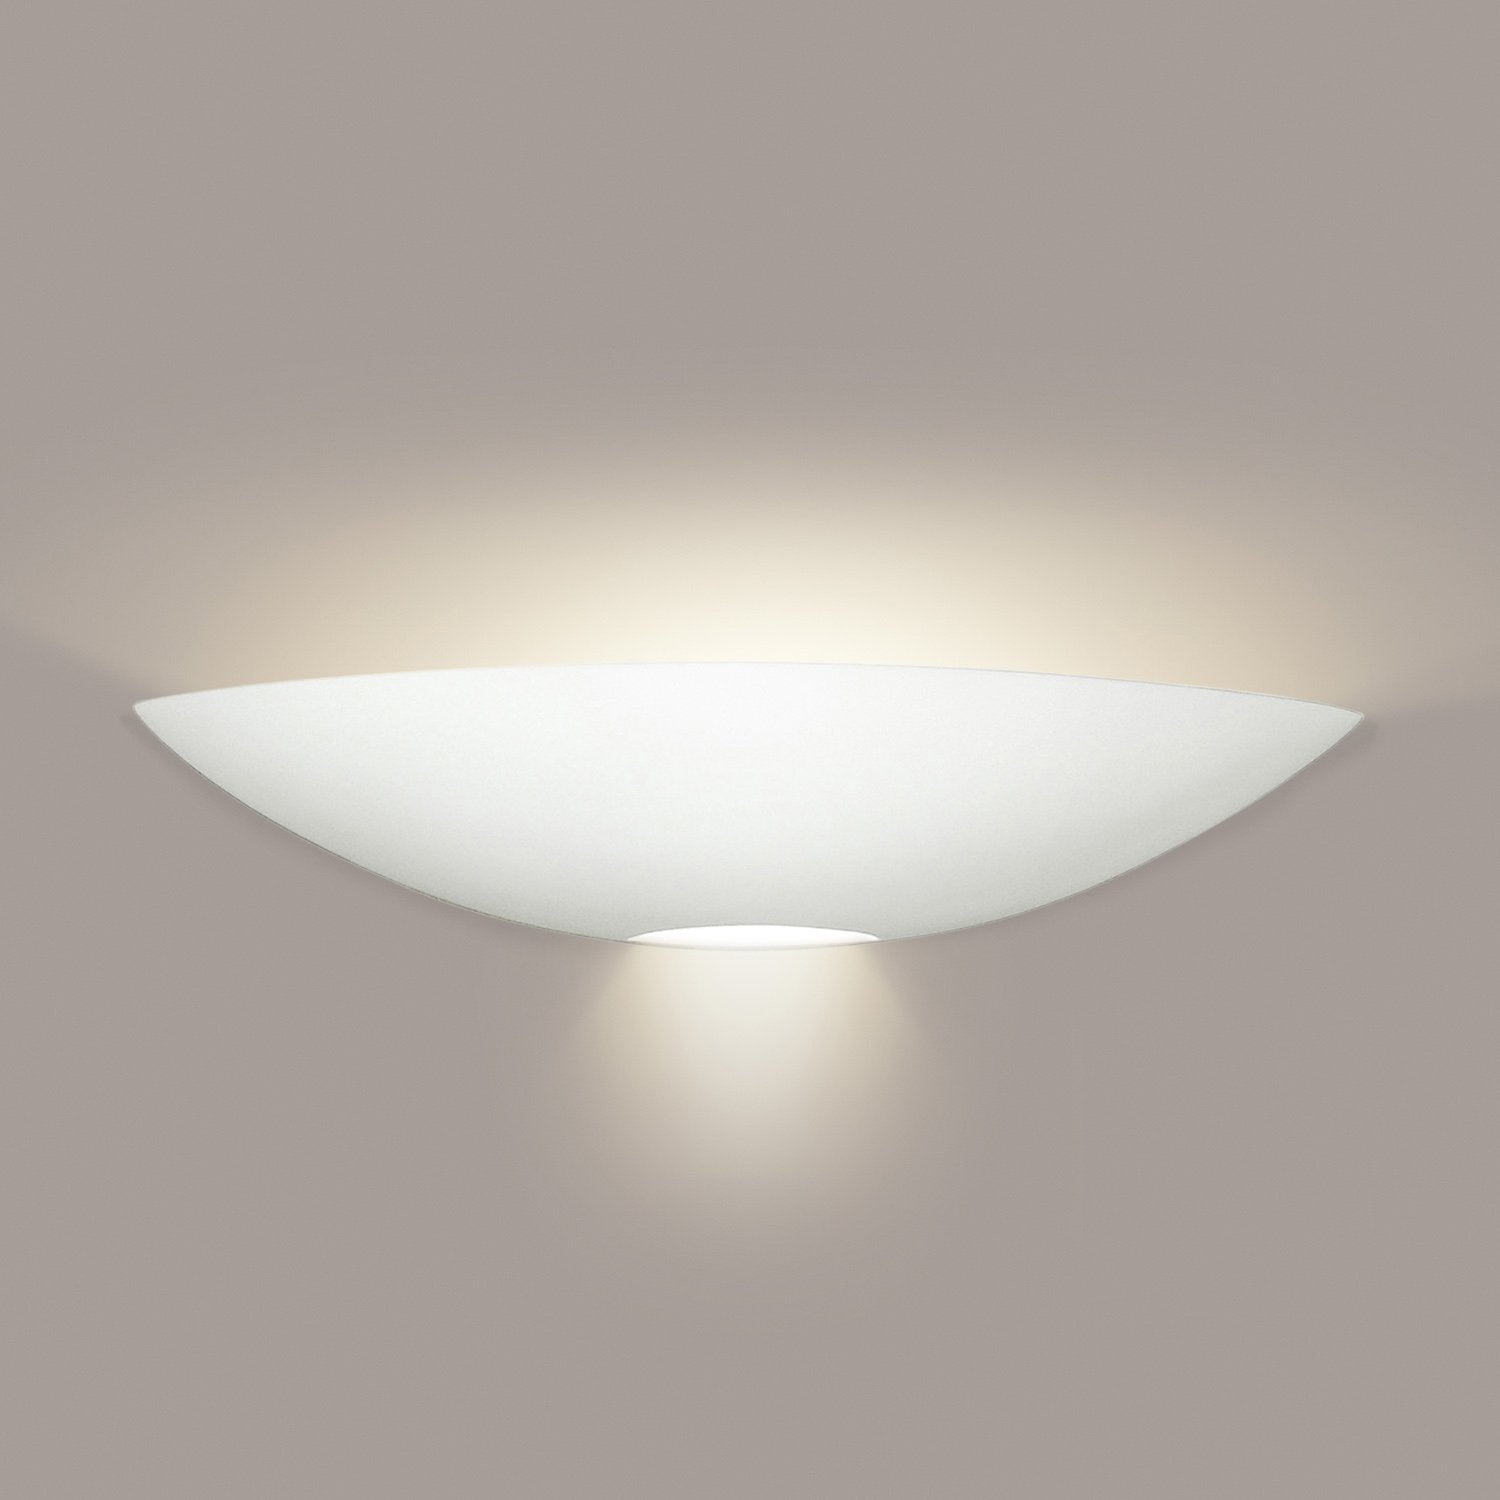 A19 1201-WET-LEDGU24-WG Islands of Light Collection Oahu White Gloss Finish Wall Sconce